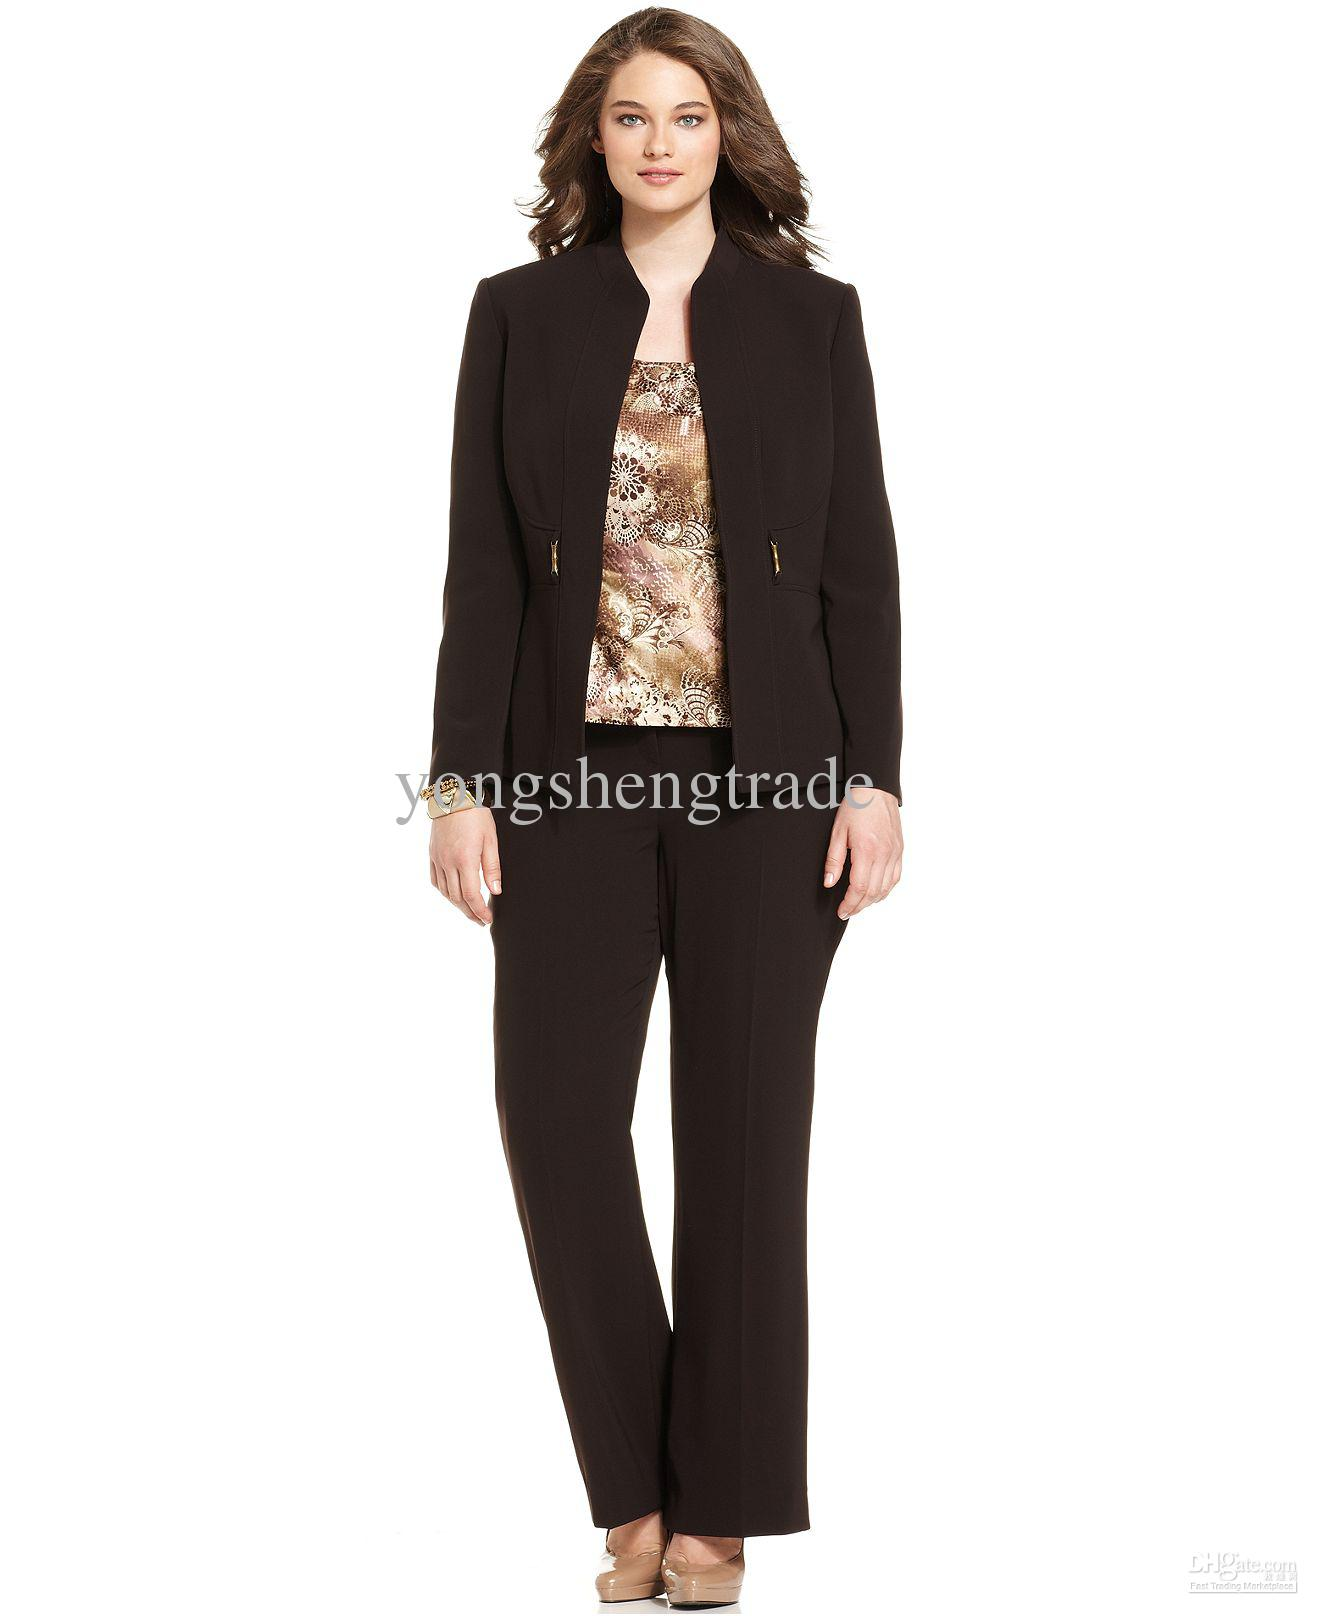 Find tahari women plus size suits at ShopStyle. Shop the latest collection of tahari women plus size suits from the most popular stores - all in one.